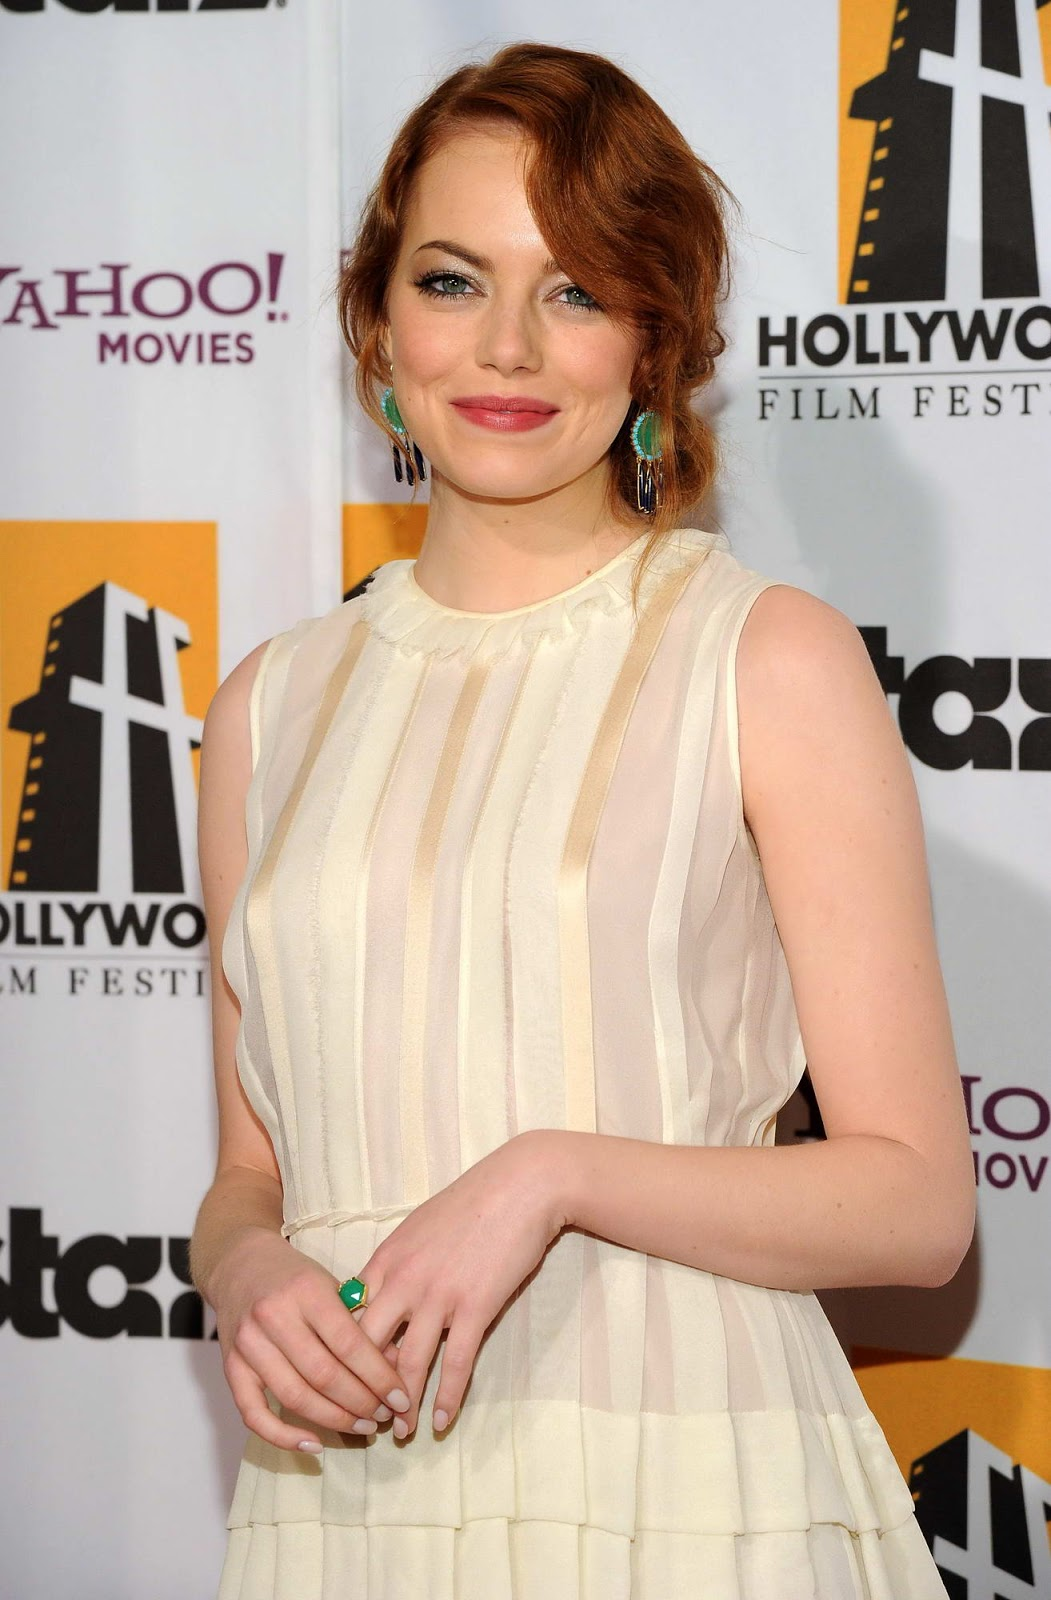 Battle of the Sexes actress Emma Stone at The 15th Annual Hollywood Film Awards Gala